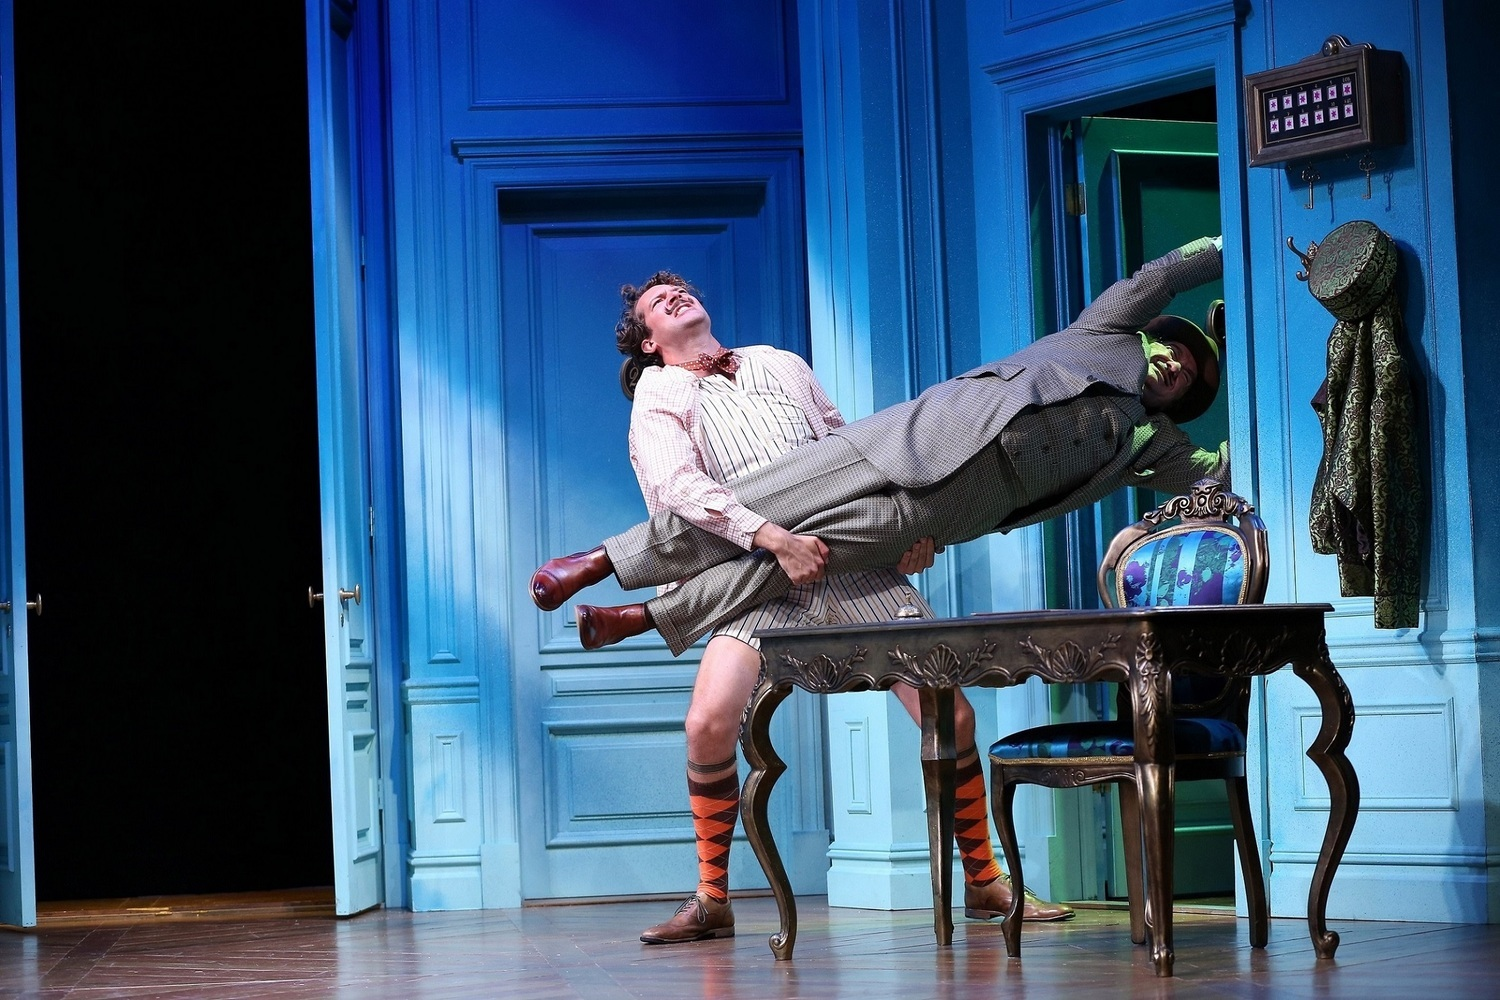 BWW Review: A FLEA IN HER EAR at Westport Country Playhouse